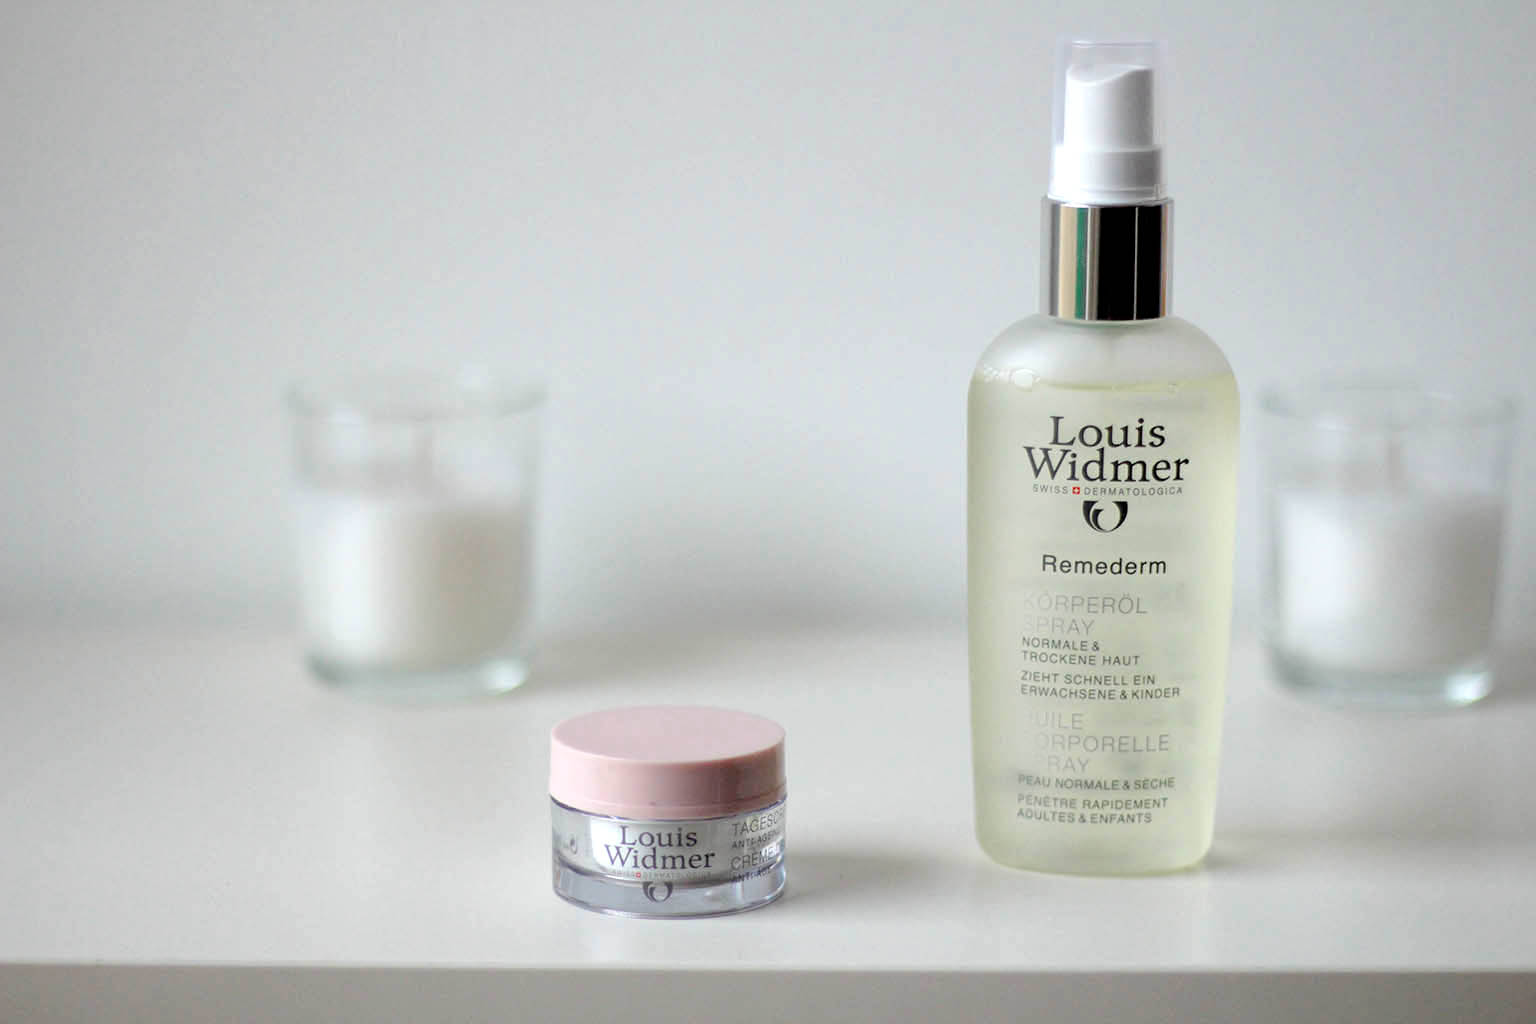 gommage-masque-soin-peau-cocooning-beauté-astuces-conseil-routine-hydrater